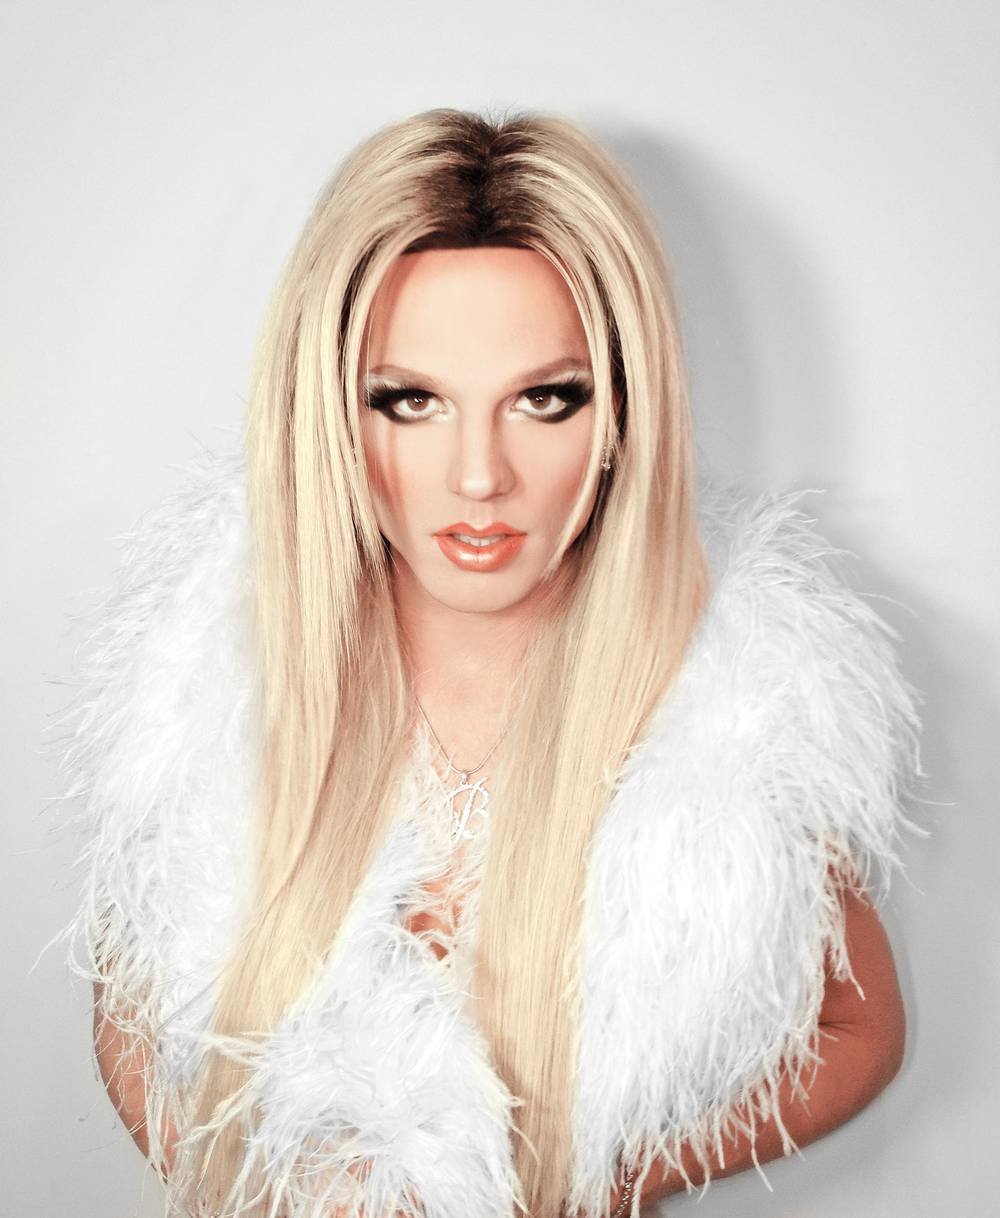 Britney spears transsexual